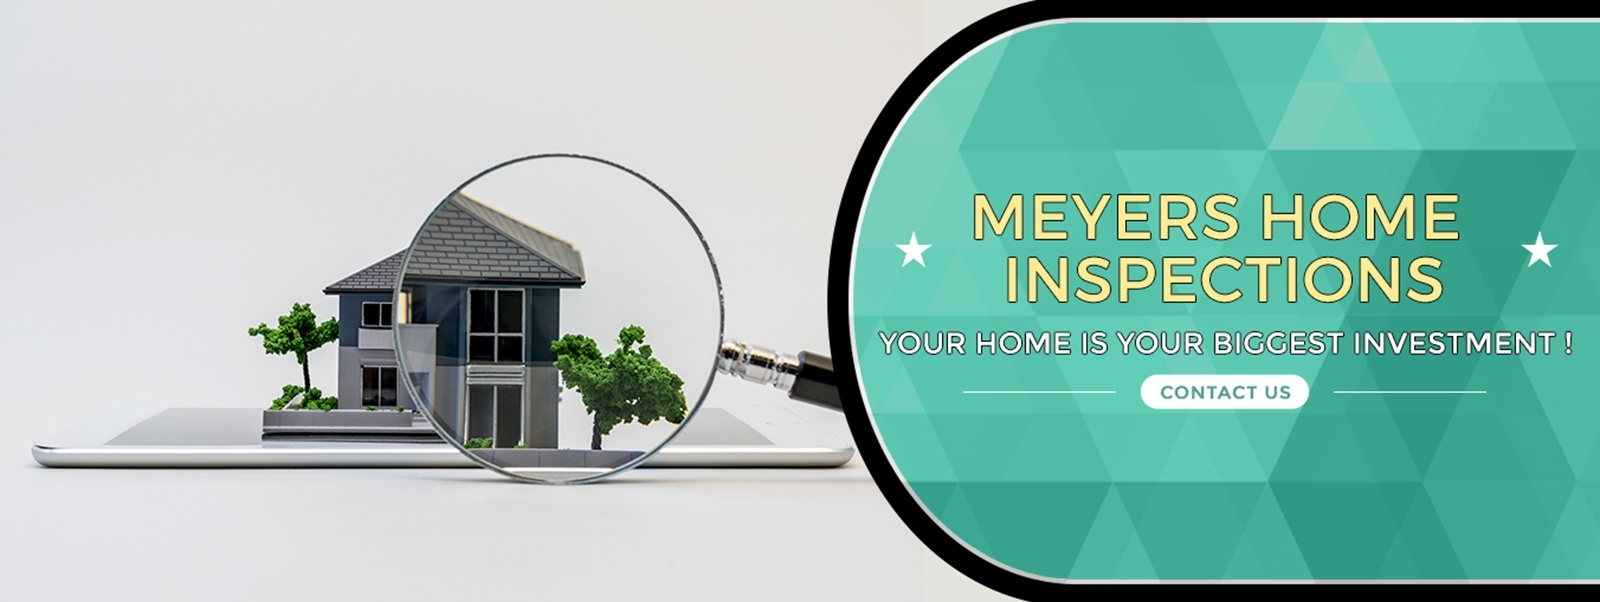 home inspection New Jersey